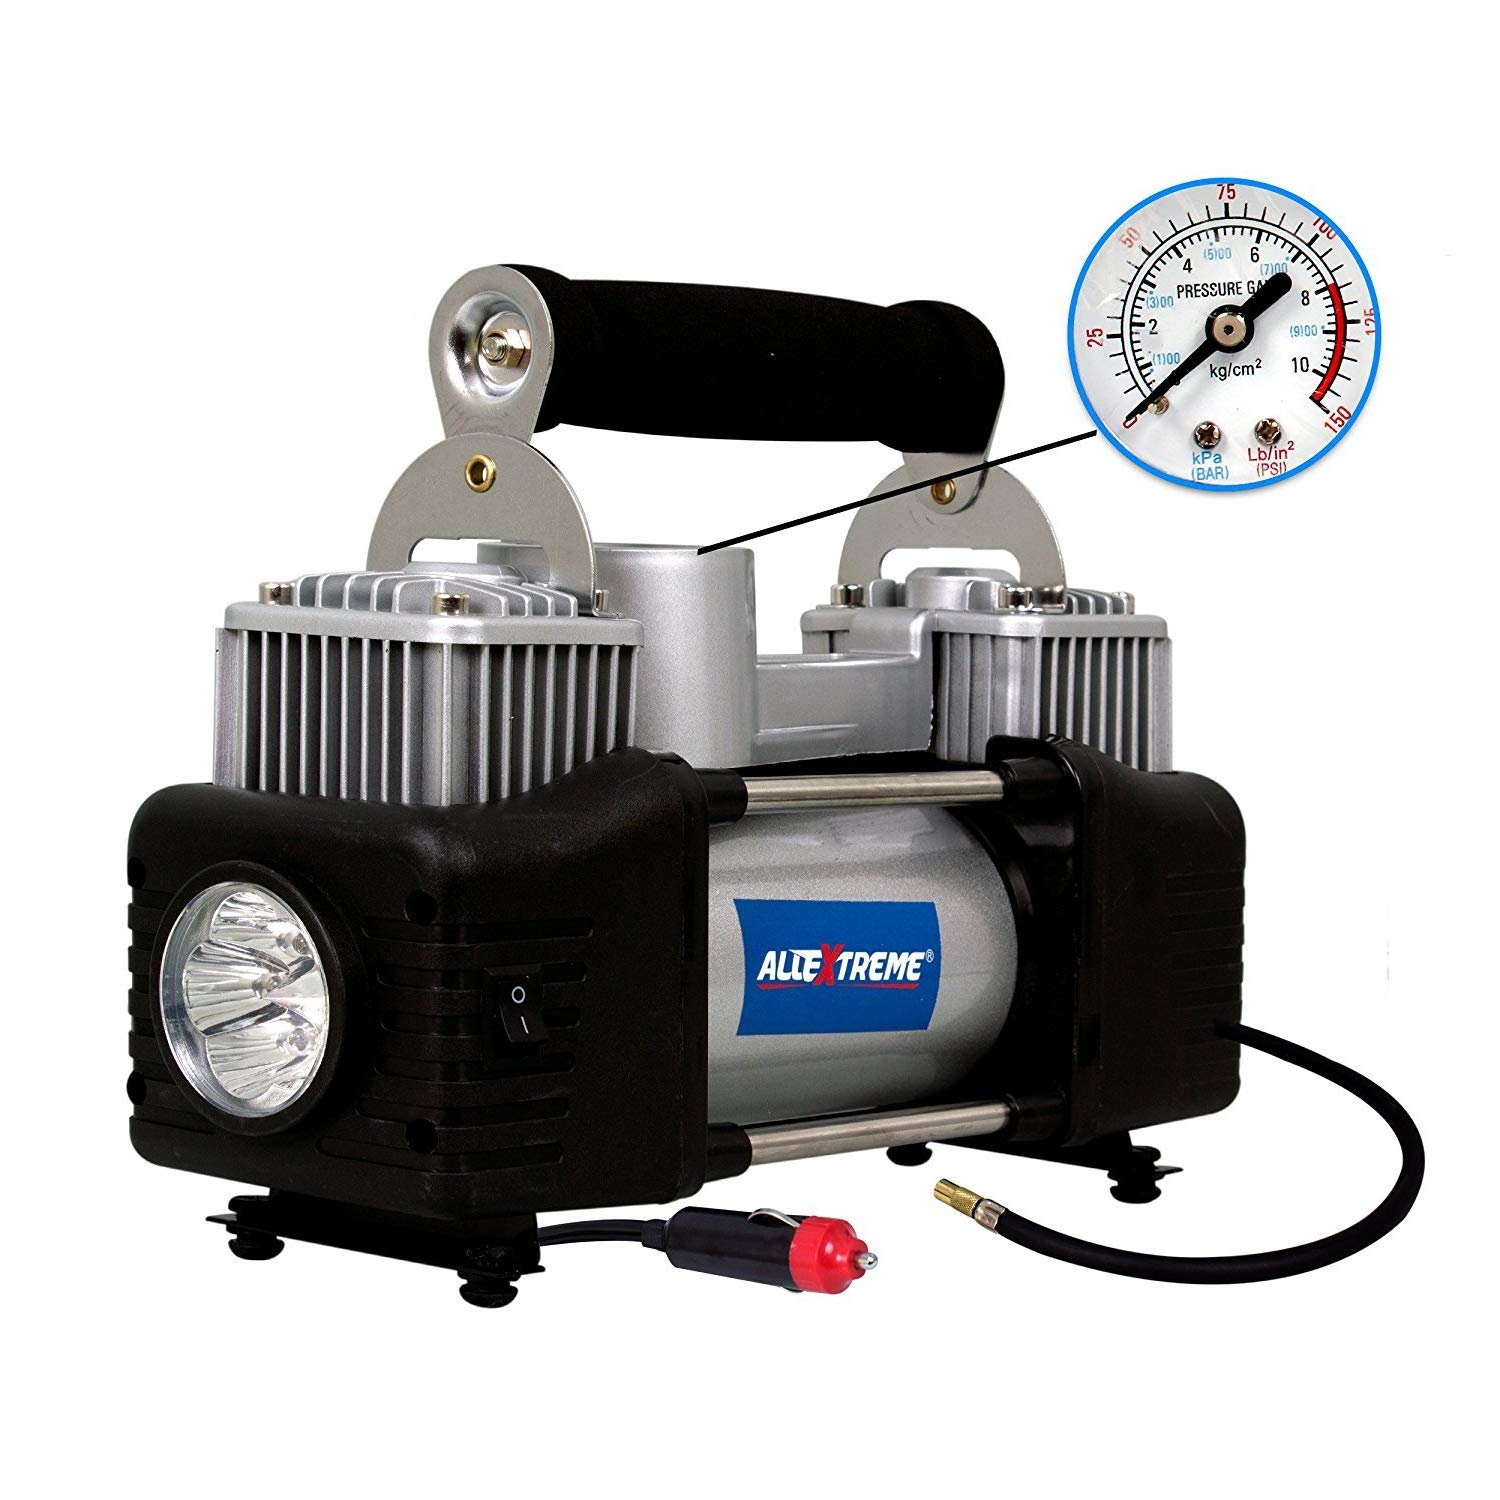 AllExtreme AE-8304Z Typhoon Double Cylinder Tyre Inflator Portable Heavy Duty Air Compressor with Cigratte Lighter Plug for Car, Auto and SUVs (150 PSI, 1 Year Warranty)